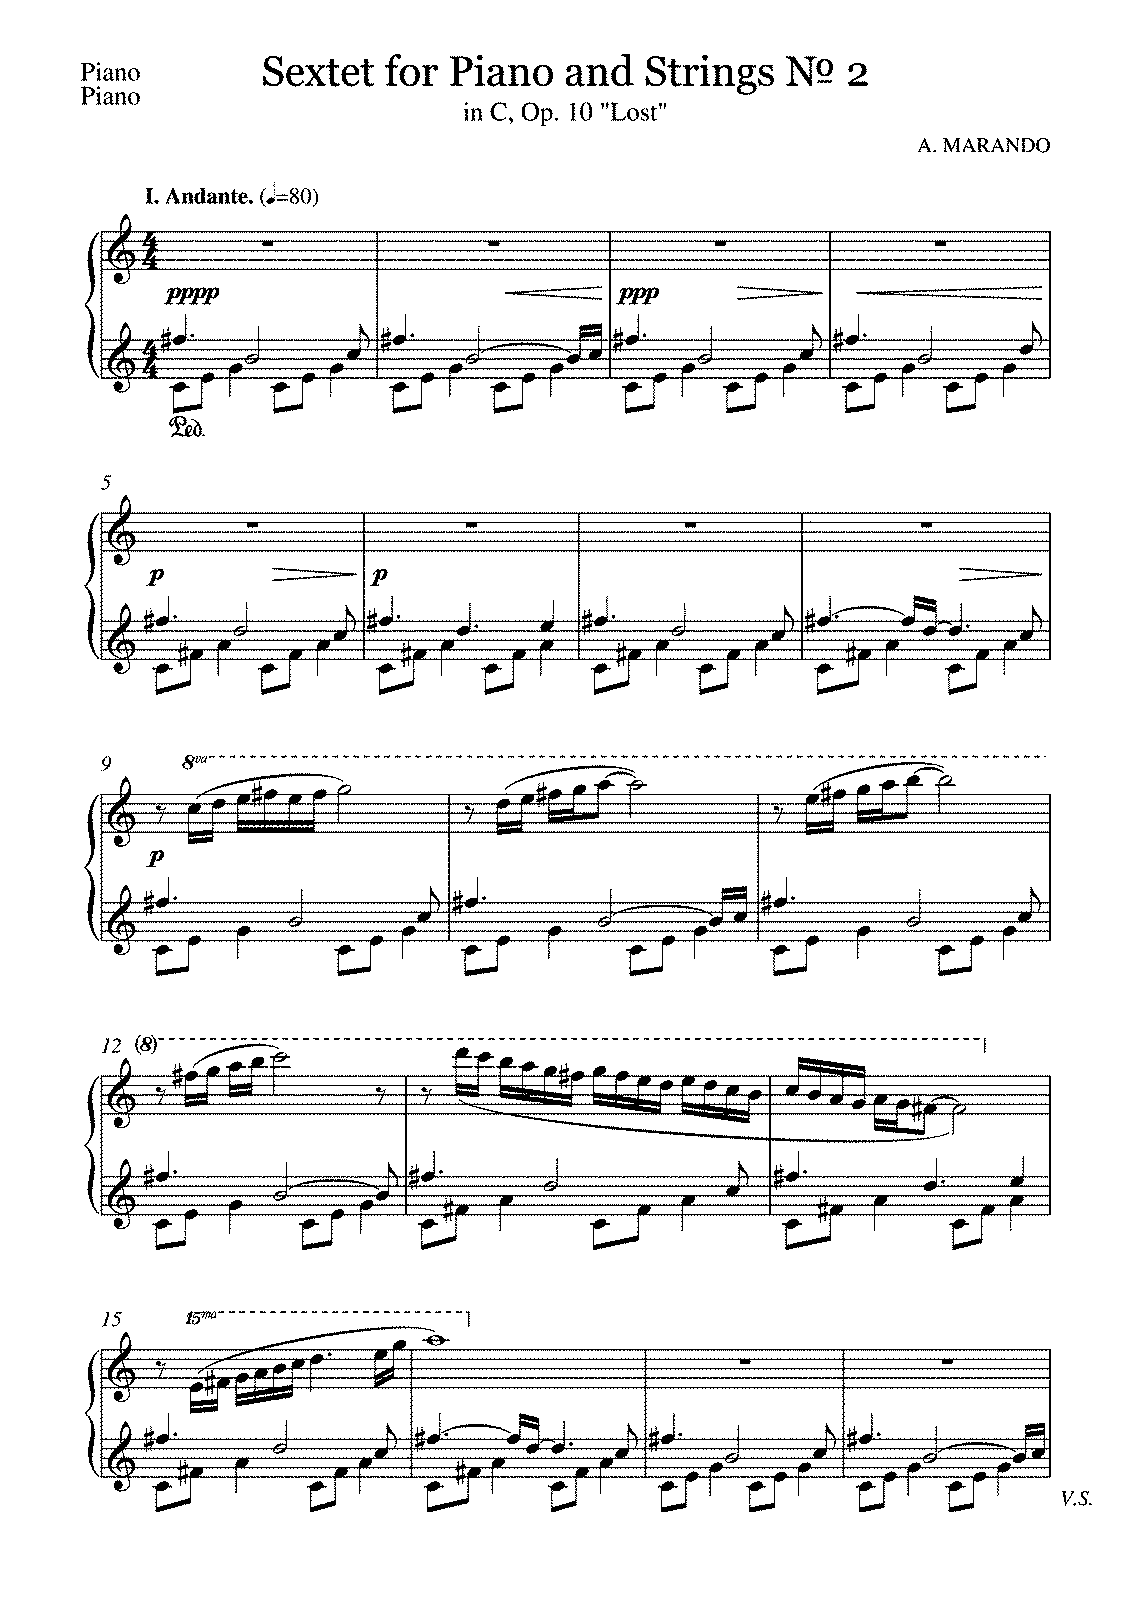 "PMLP133405-A. Marando - Op.10 - Sextet for Piano and Strings No. 2 in C, ""Lost"" -Piano-.pdf"